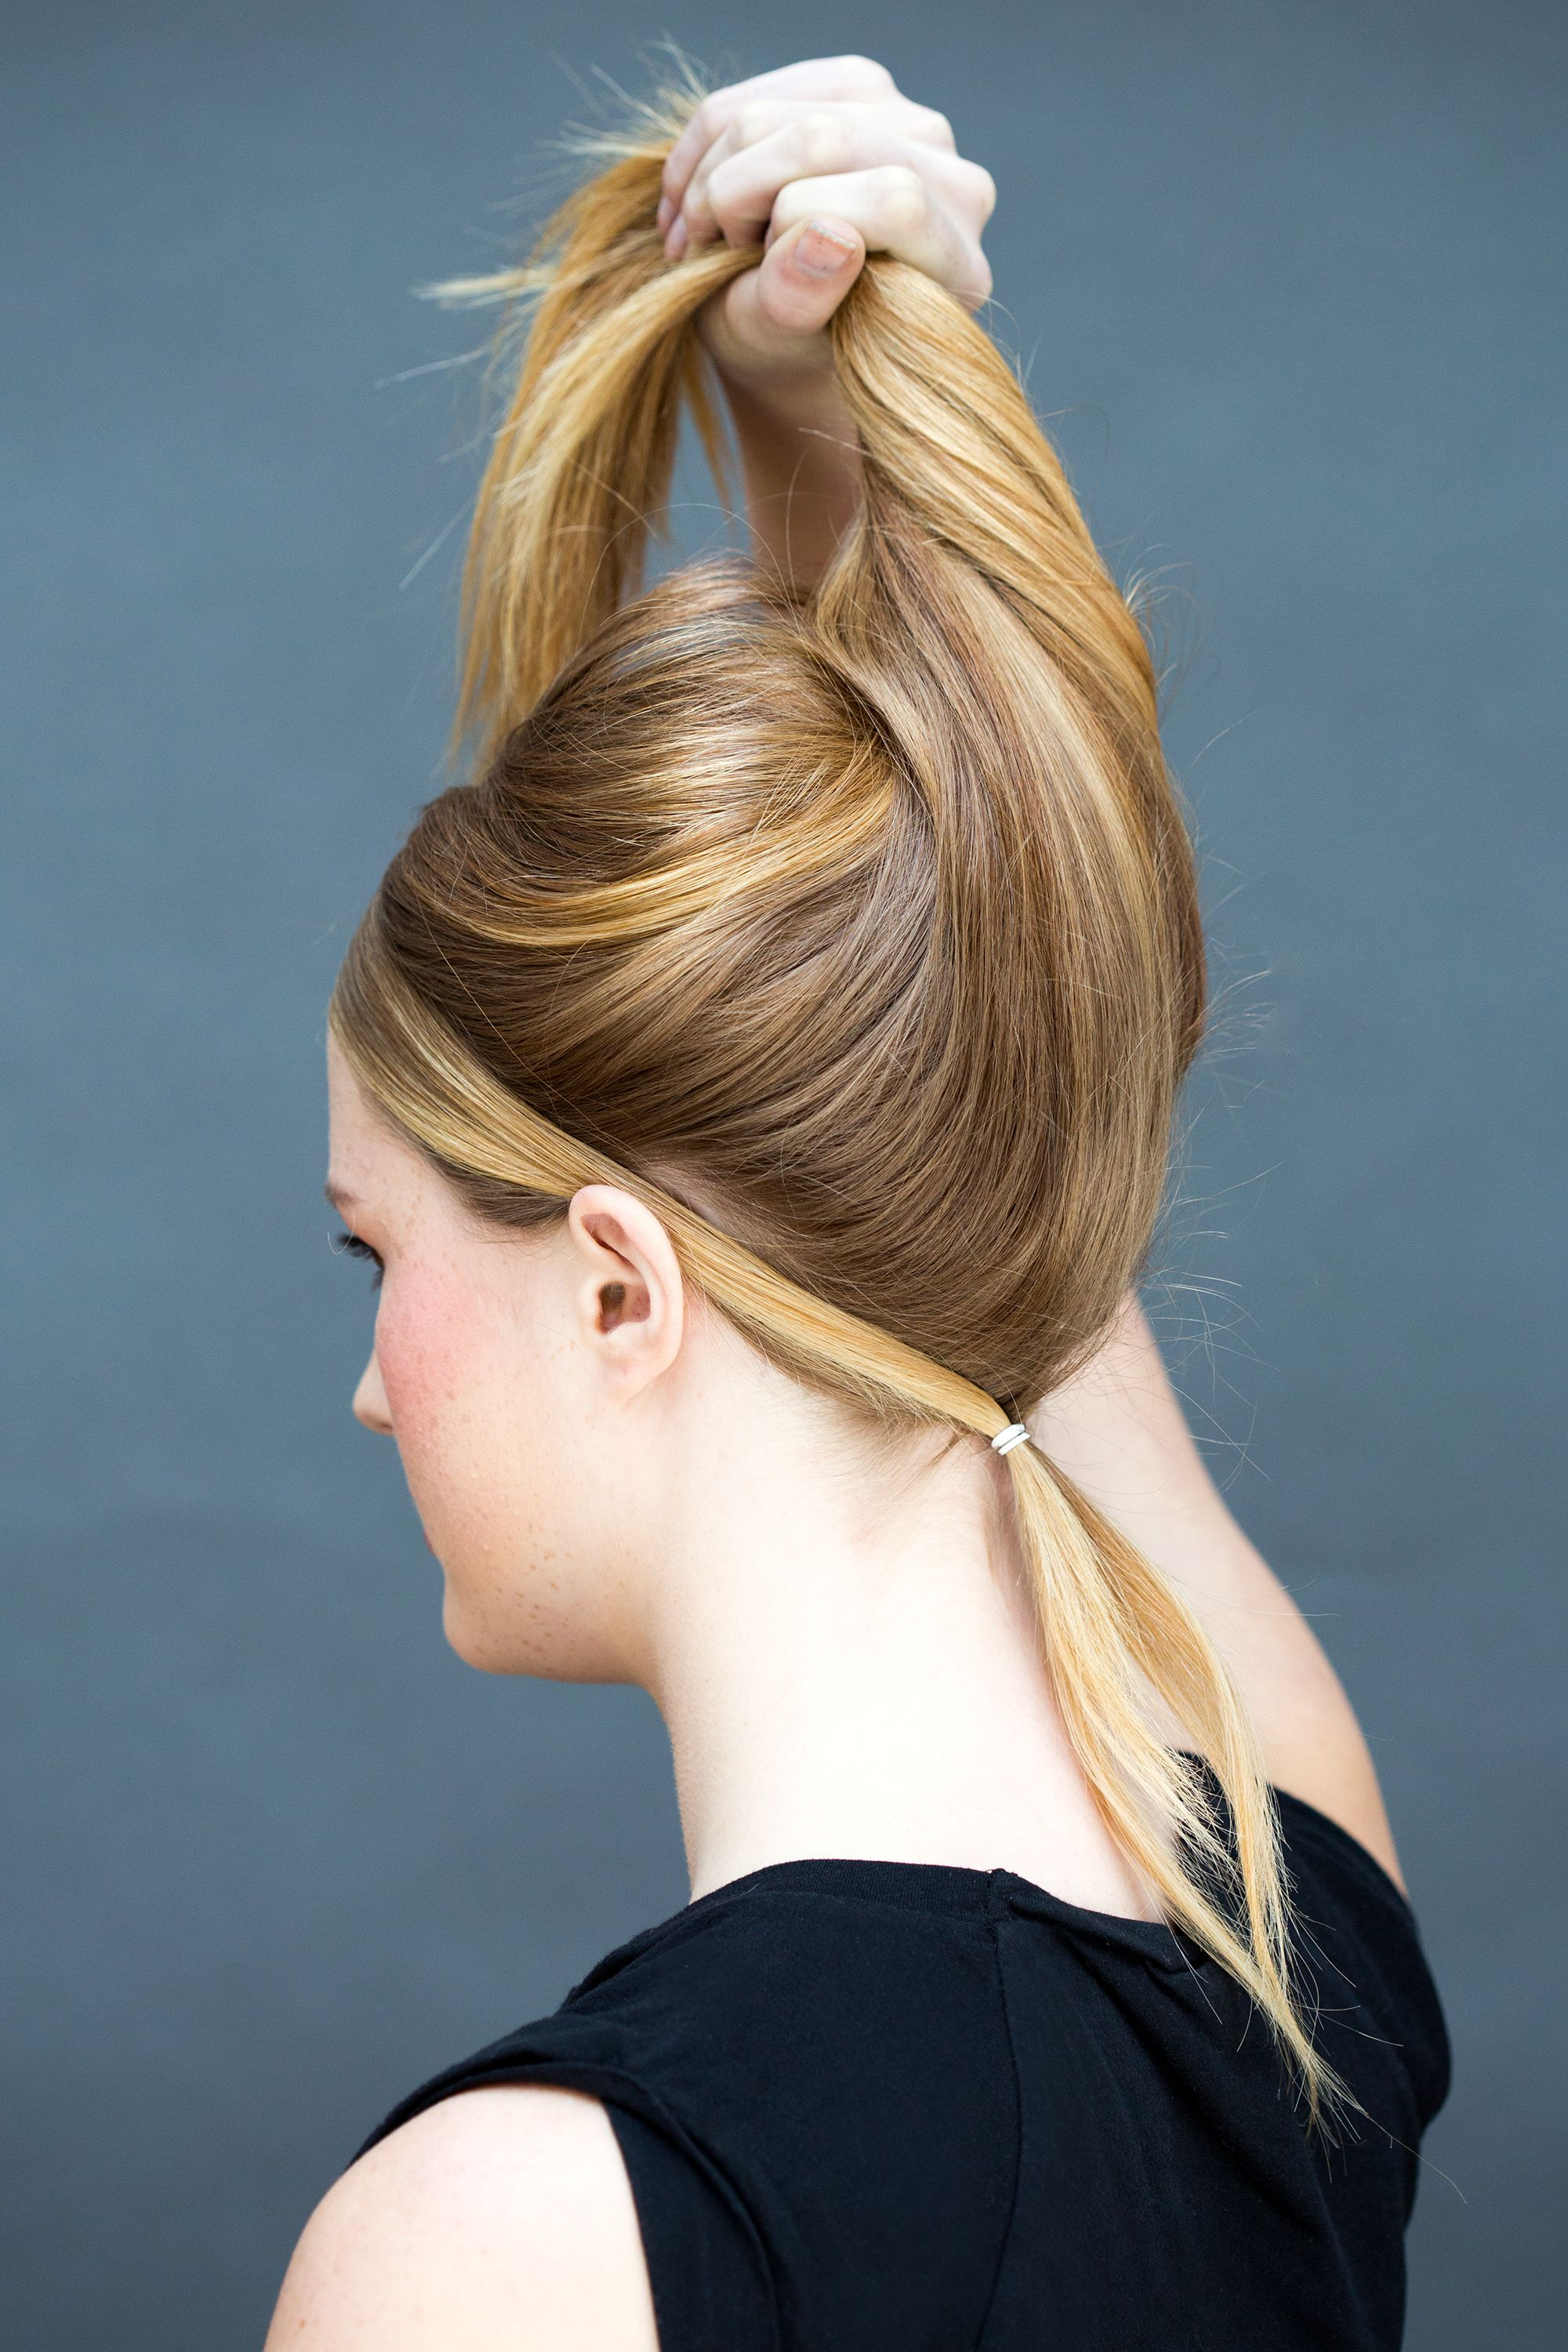 Tremendous 10 Easy Hairstyles You Can Do In 10 Seconds Diy Hairstyles Schematic Wiring Diagrams Amerangerunnerswayorg